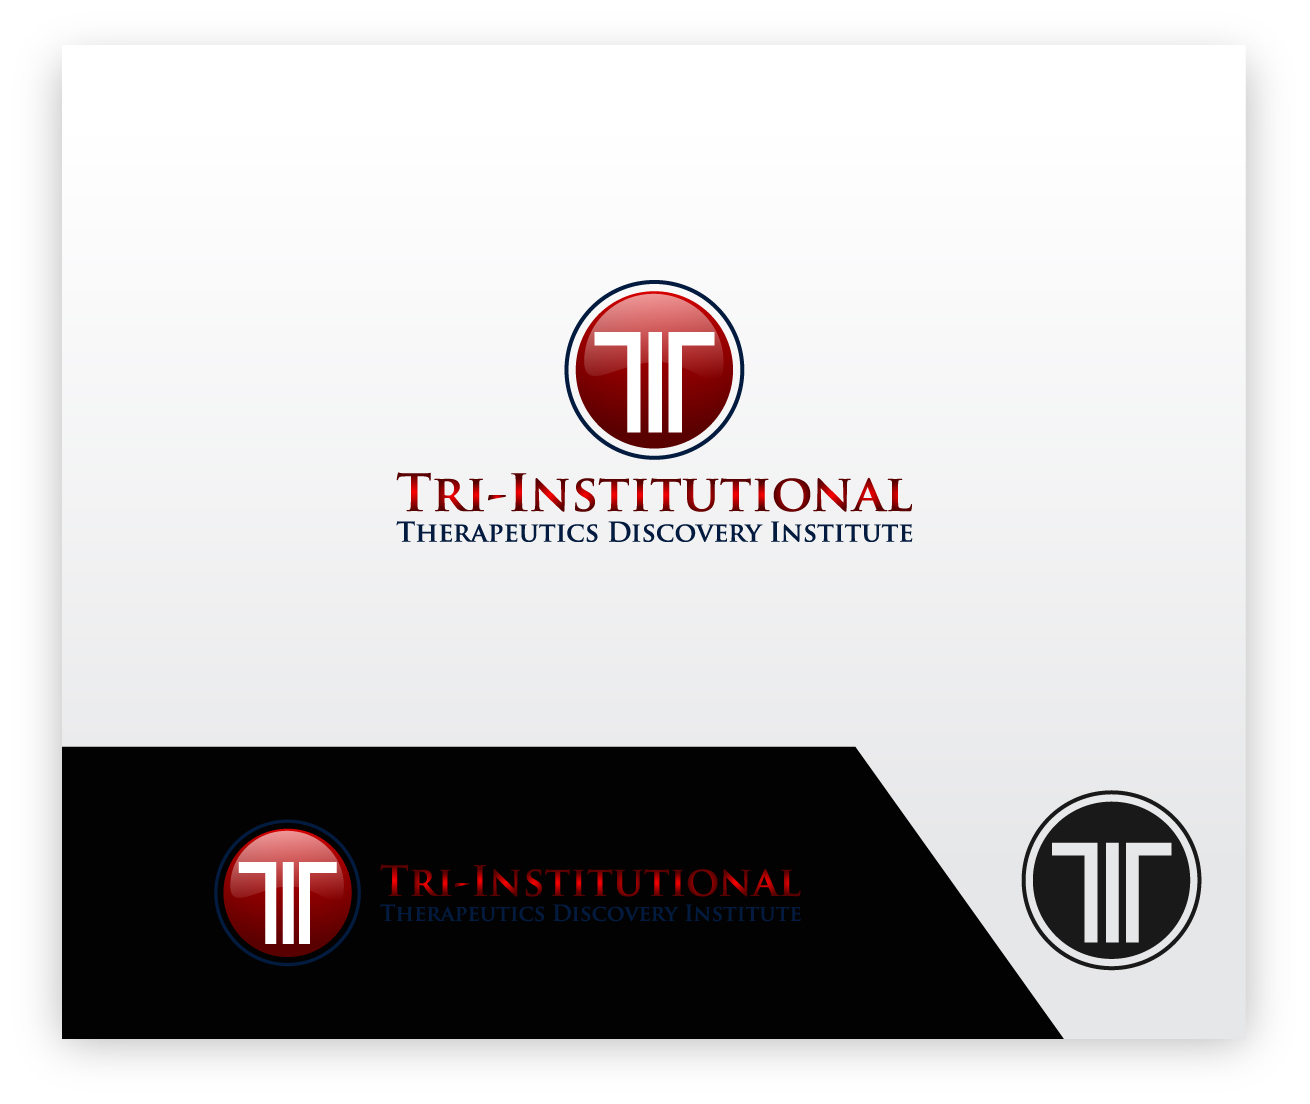 Logo Design by zoiDesign - Entry No. 167 in the Logo Design Contest Inspiring Logo Design for Tri-Institutional Therapeutics Discovery Institute.